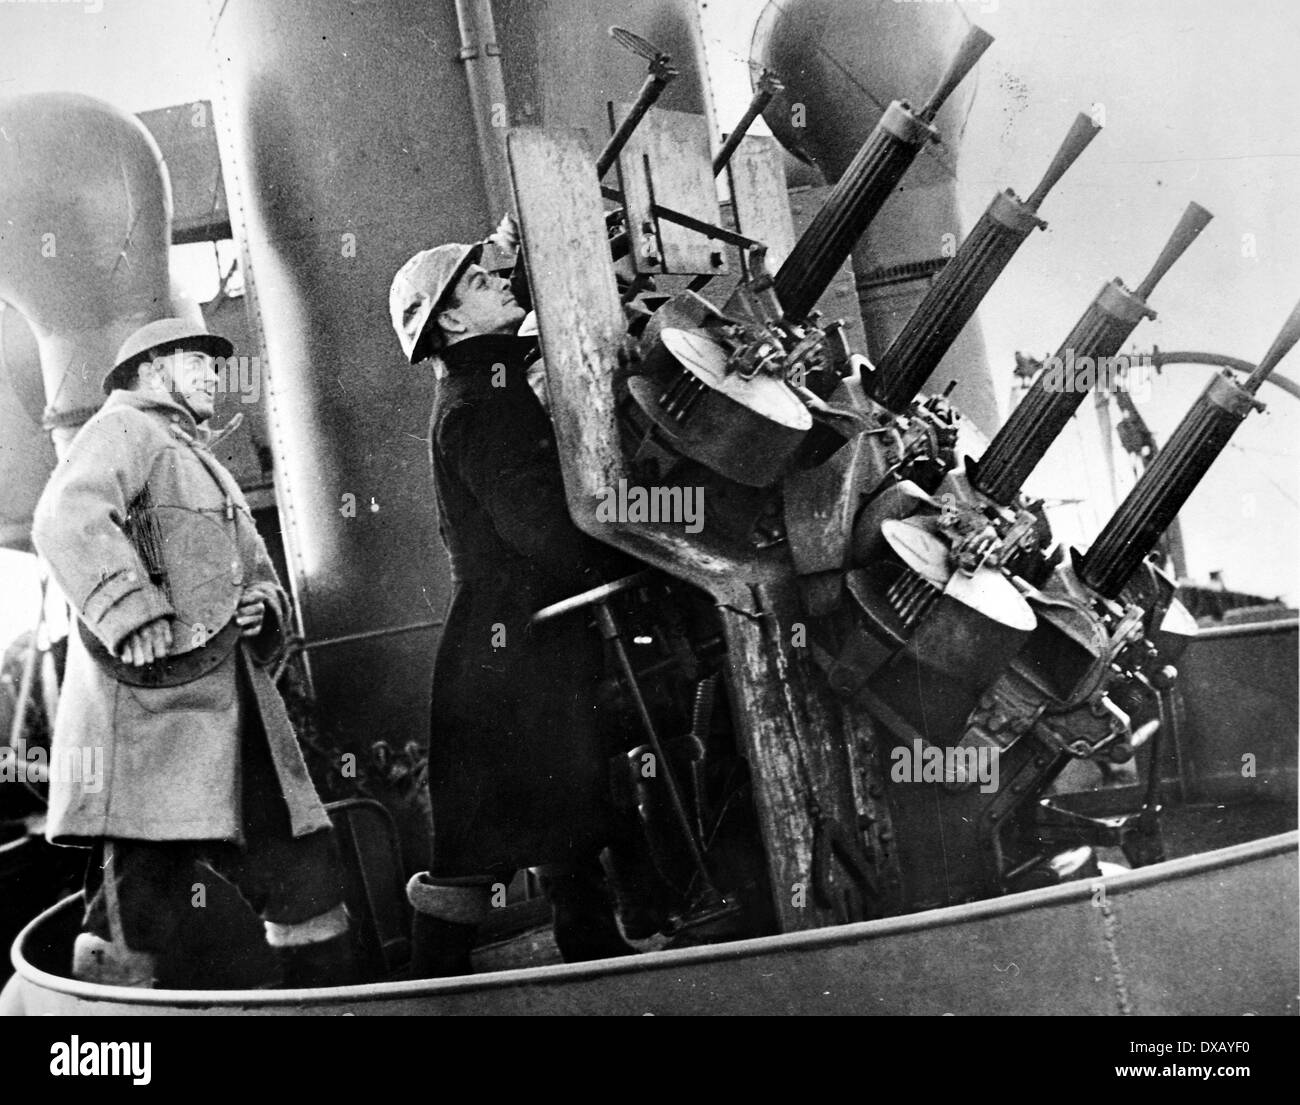 Royal Navy world war two. RN anti aircraft gunners in action - Stock Image